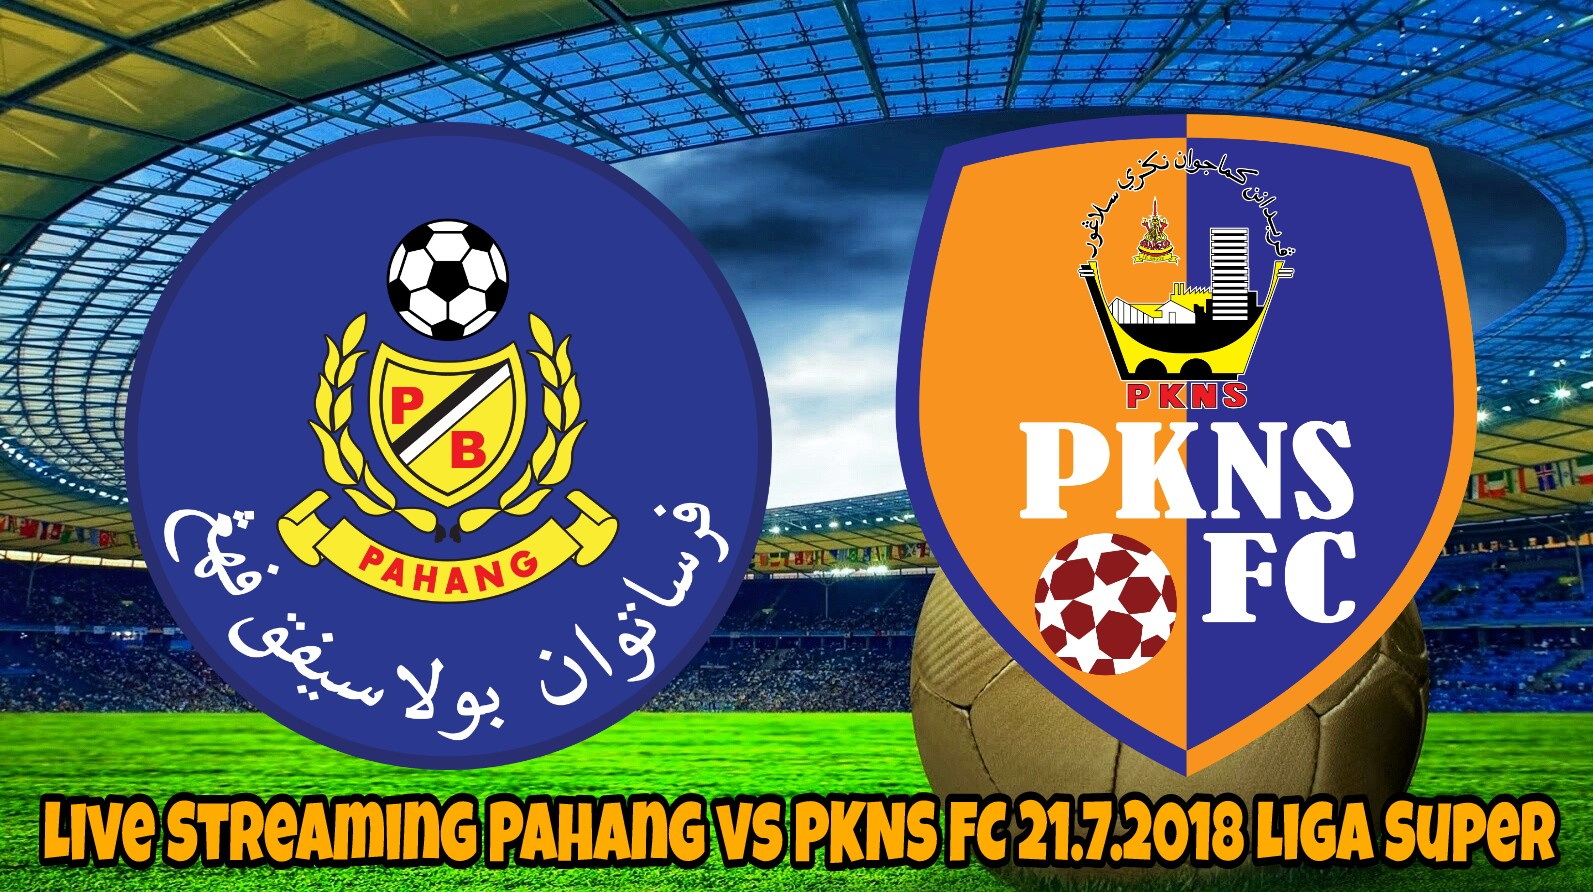 Live Streaming Pahang vs PKNS FC 21.7.2018 Liga Super